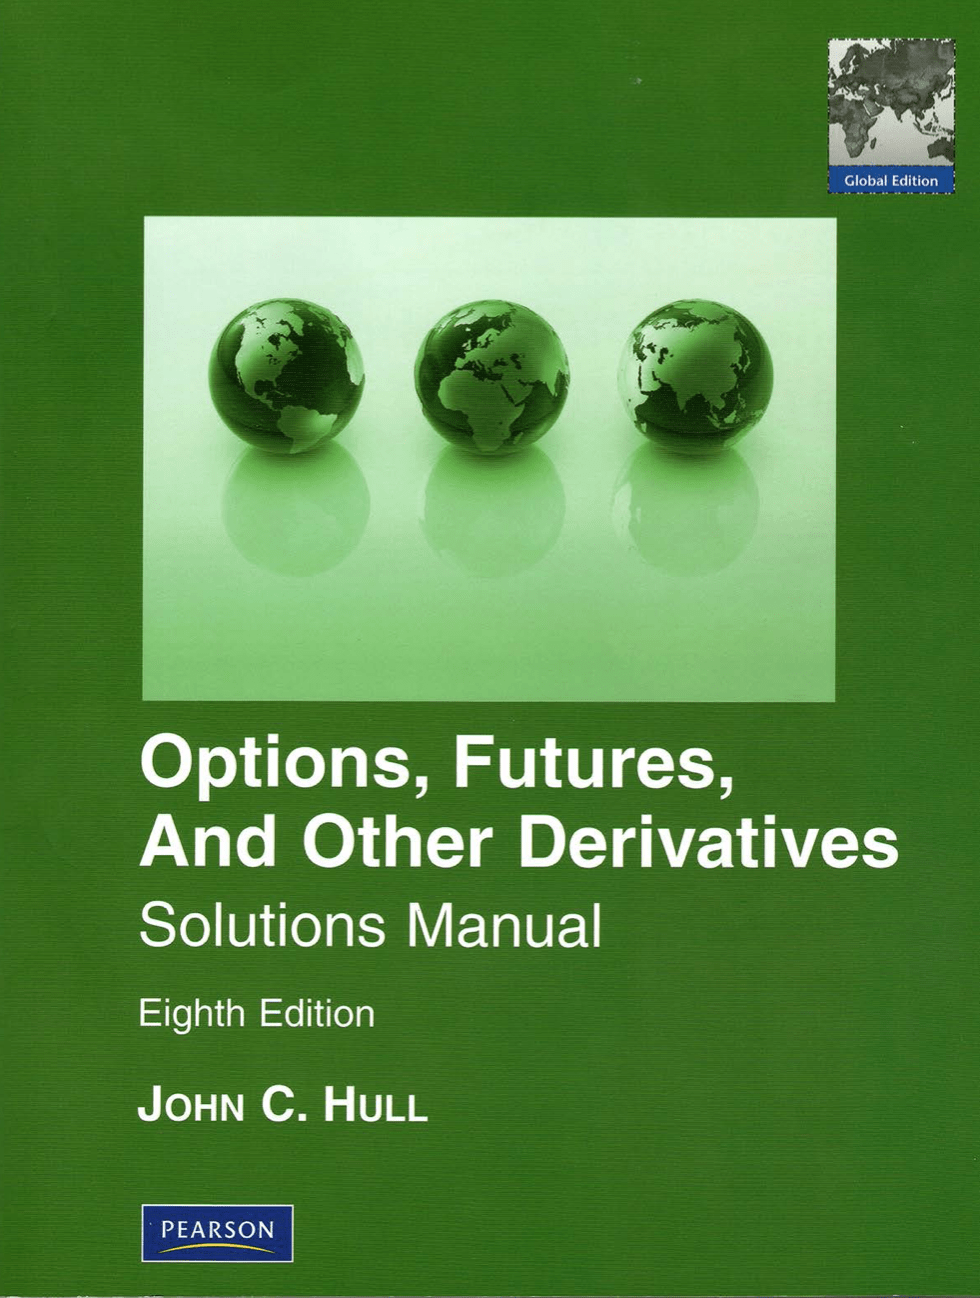 Options, Futures and other Derivatives Solutions Manual book